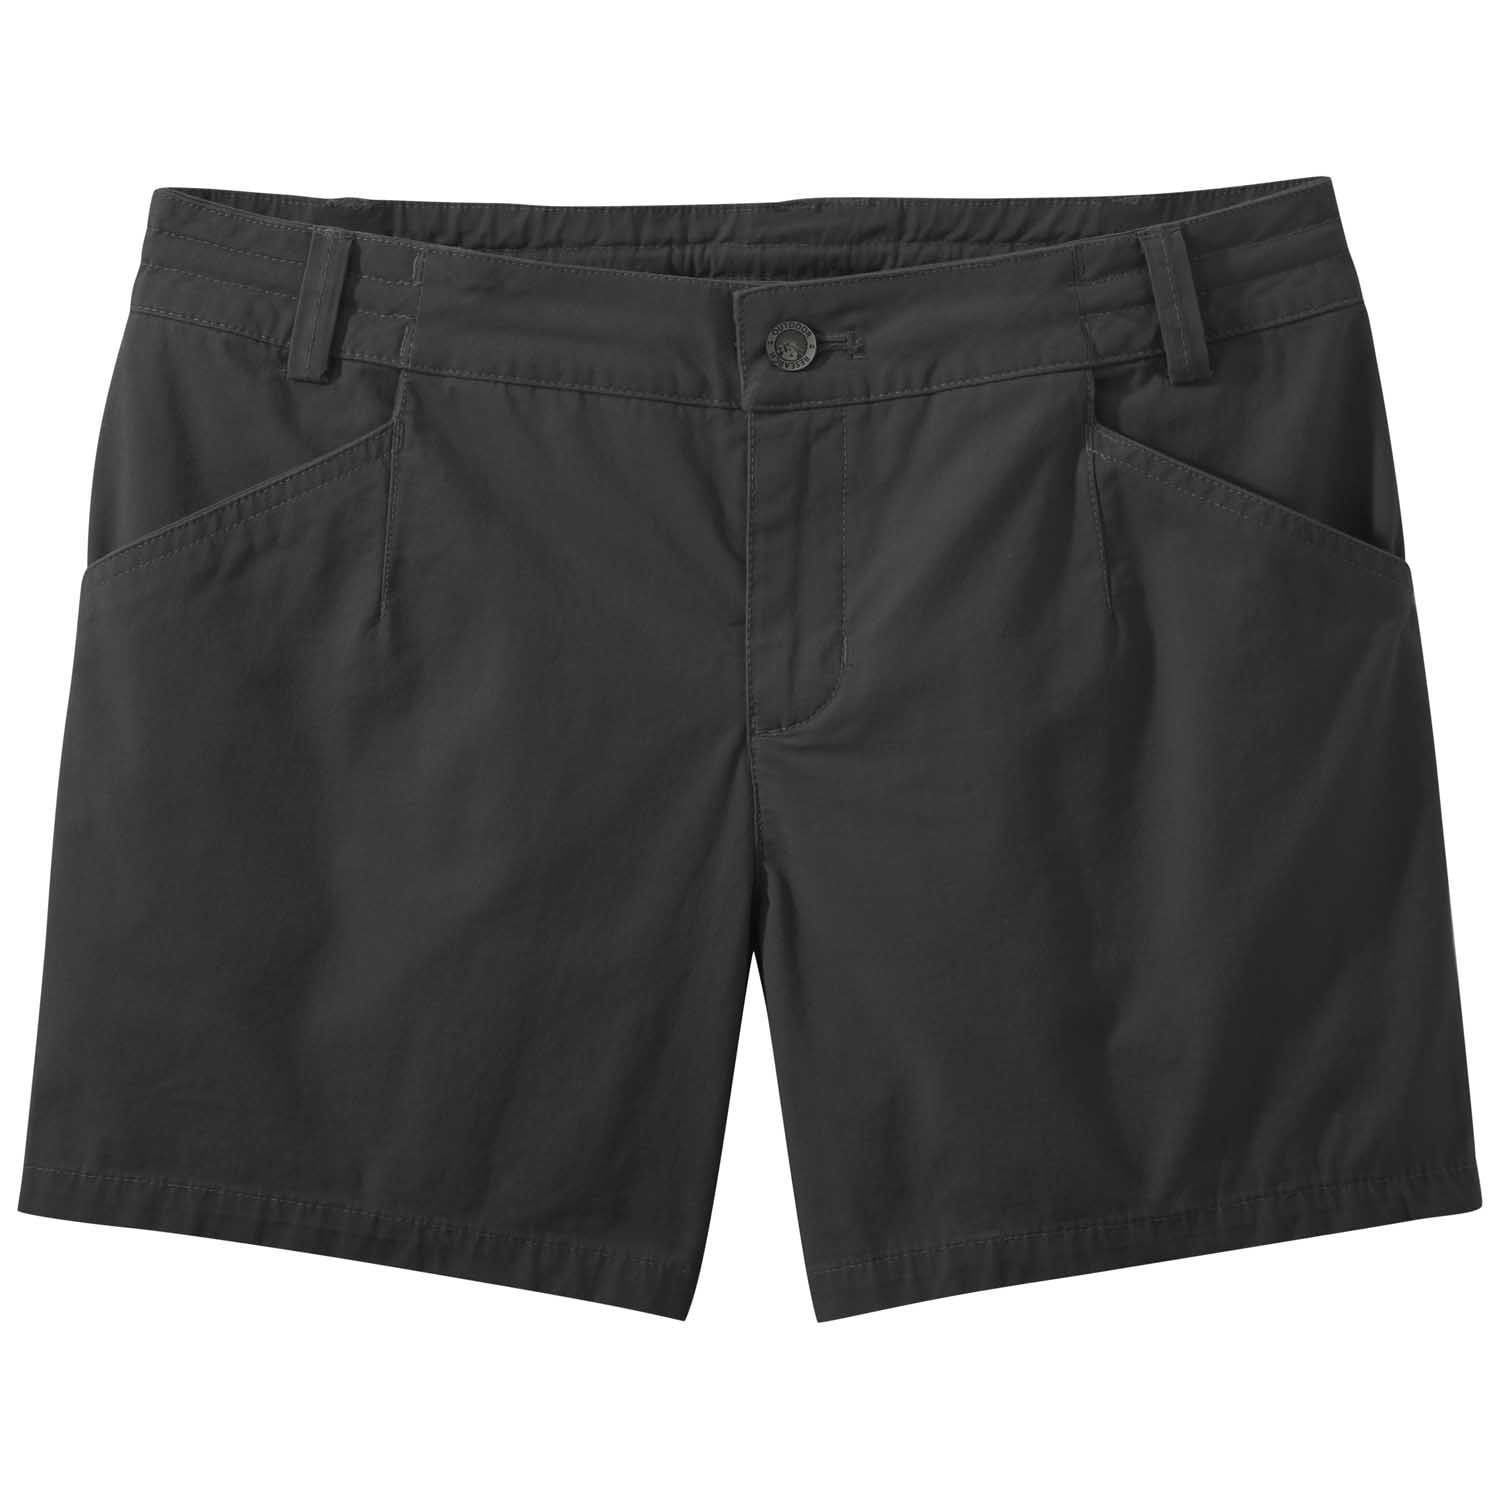 OR Wadi Rum Women's Shorts